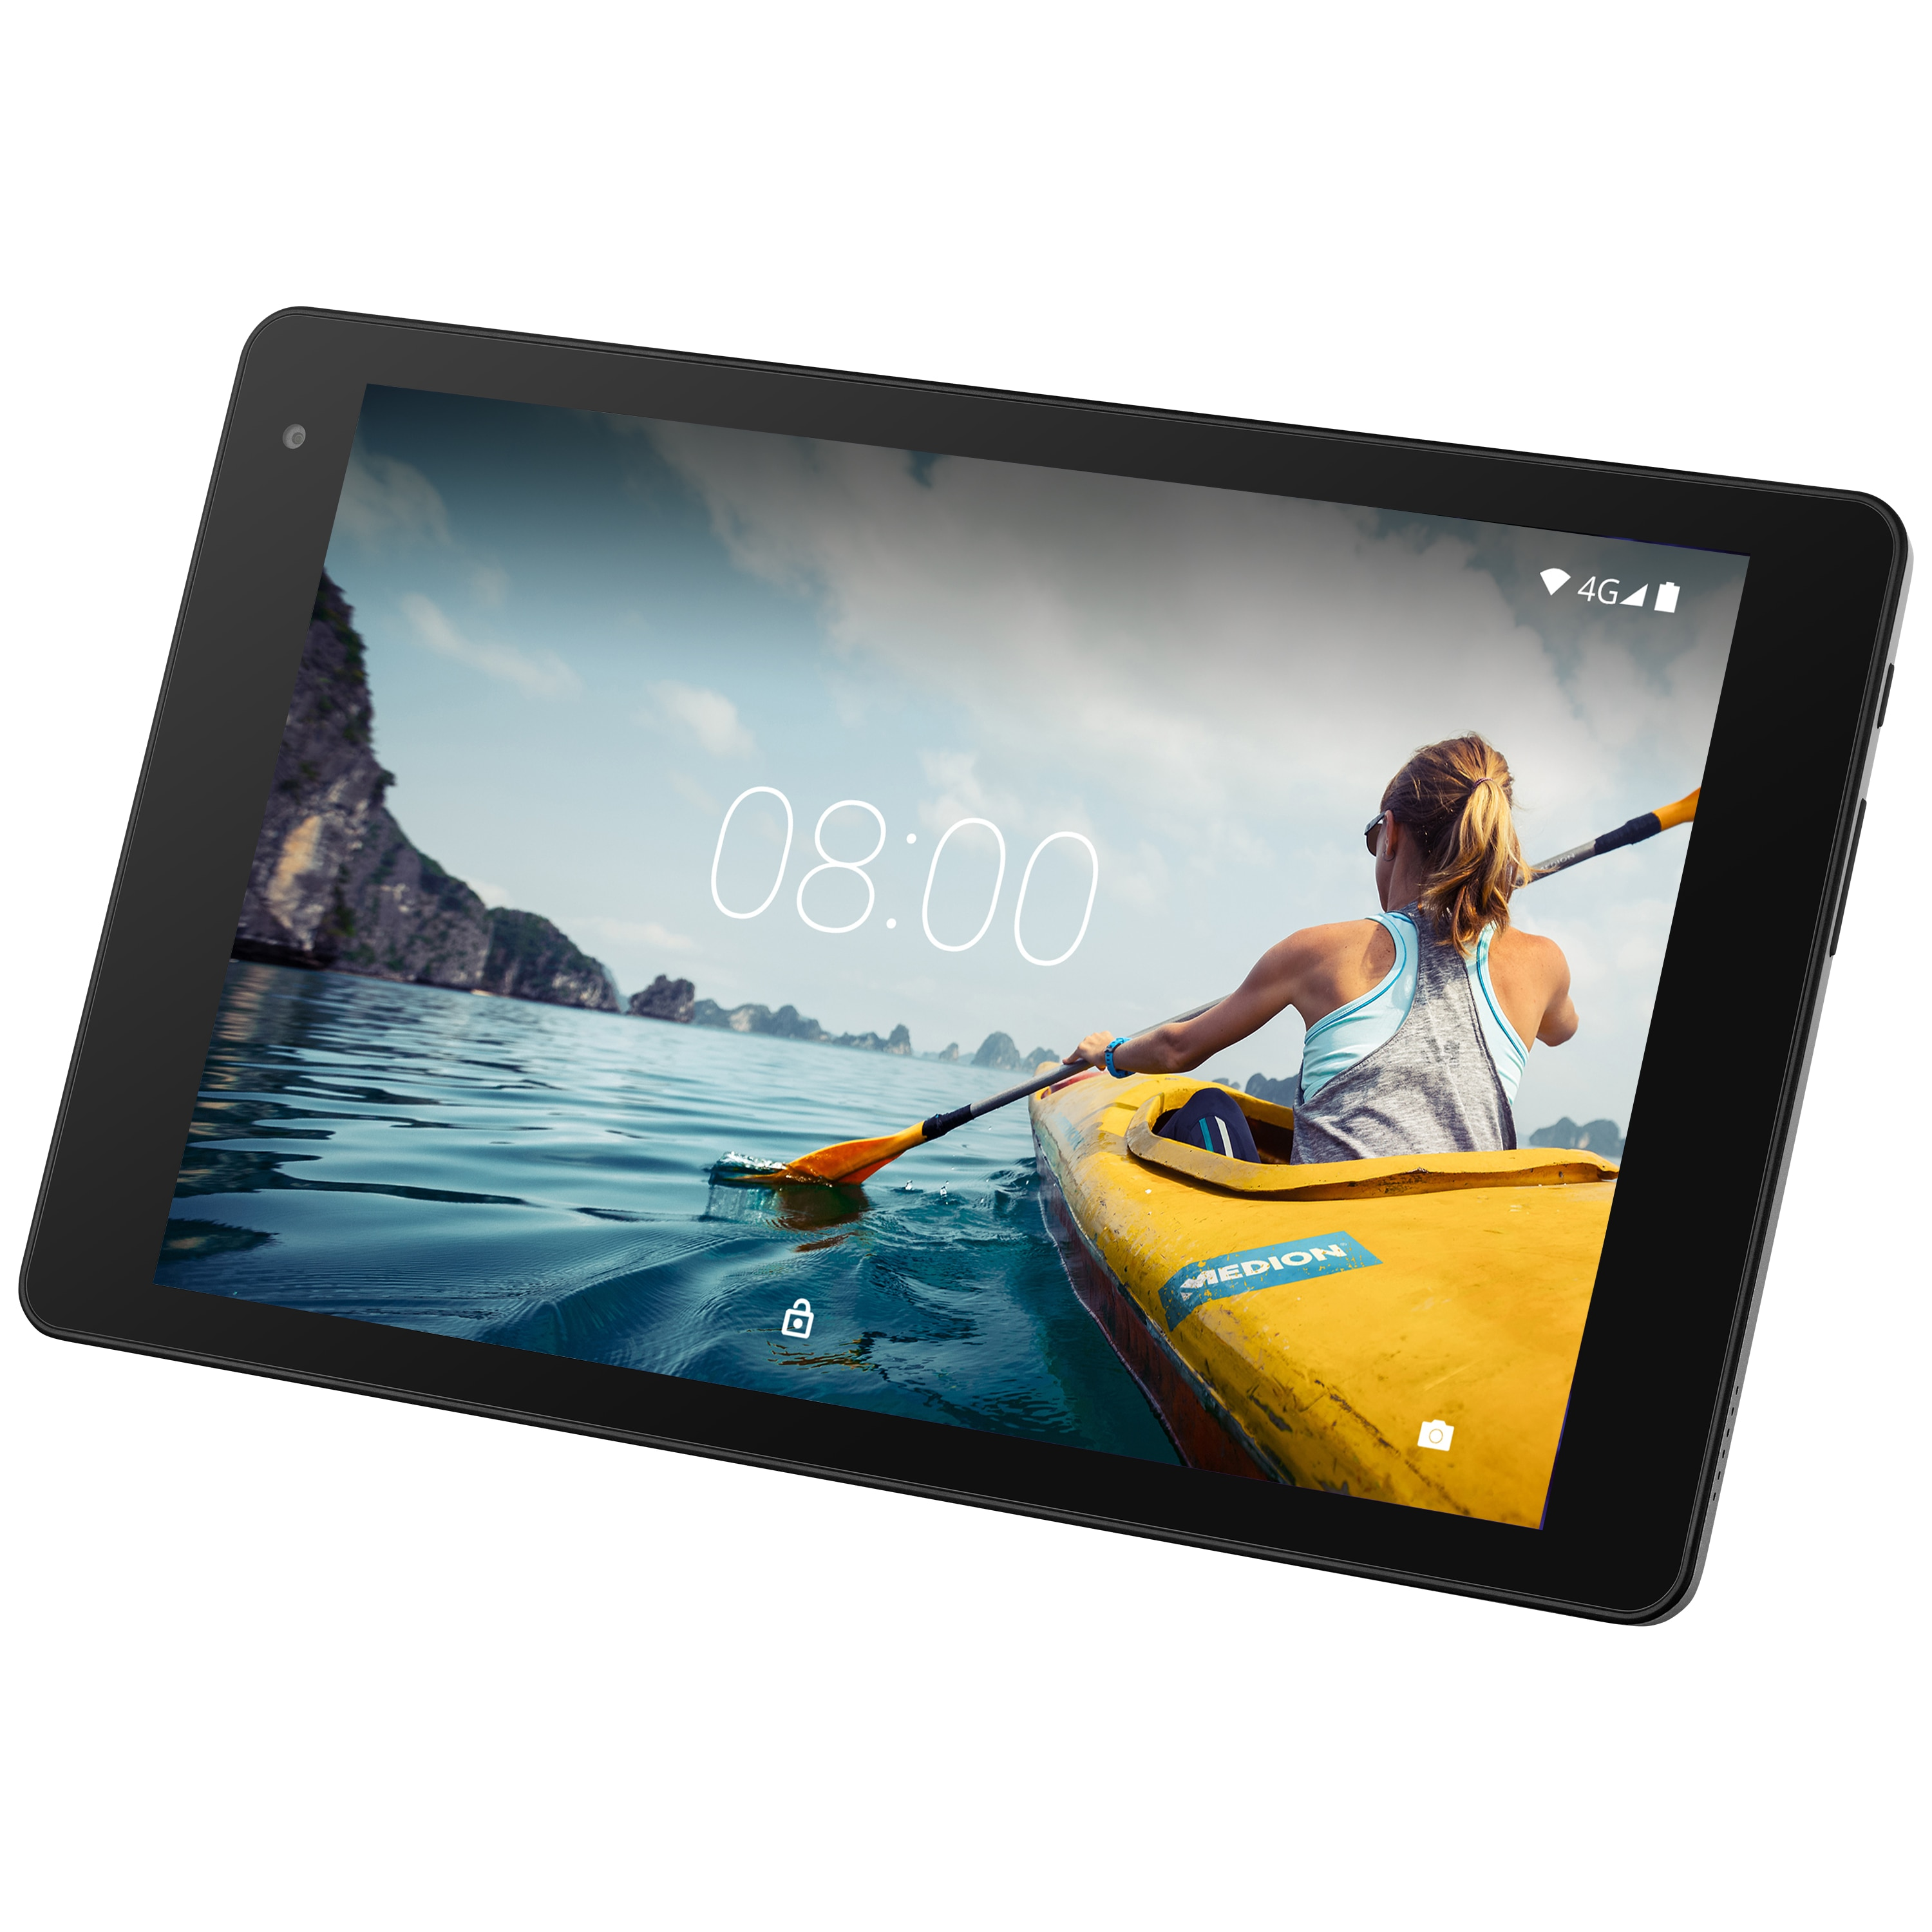 """MEDION® LIFETAB® X10607 Tablet, 25,7 cm (10,1"""") FHD Display mit Corning® Gorilla® Glass, Android™ 7.1, 64 GB Speicher, Octa Core Prozessor, LTE, Quick Charge"""